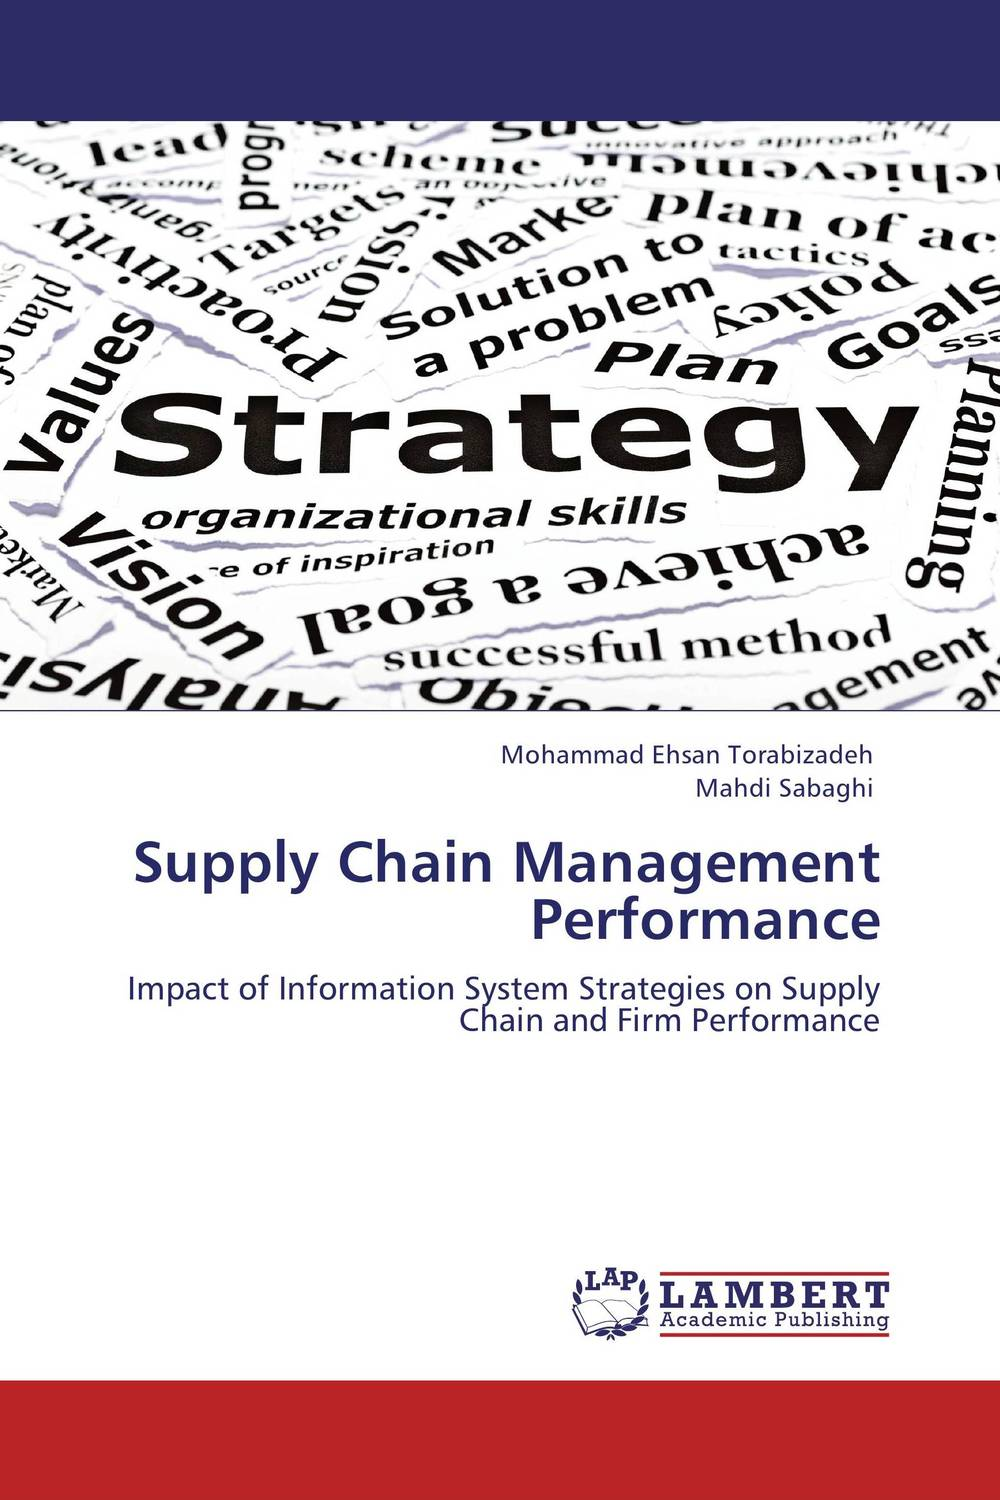 Supply Chain Management Performance robert davis a demand driven inventory optimization and replenishment creating a more efficient supply chain